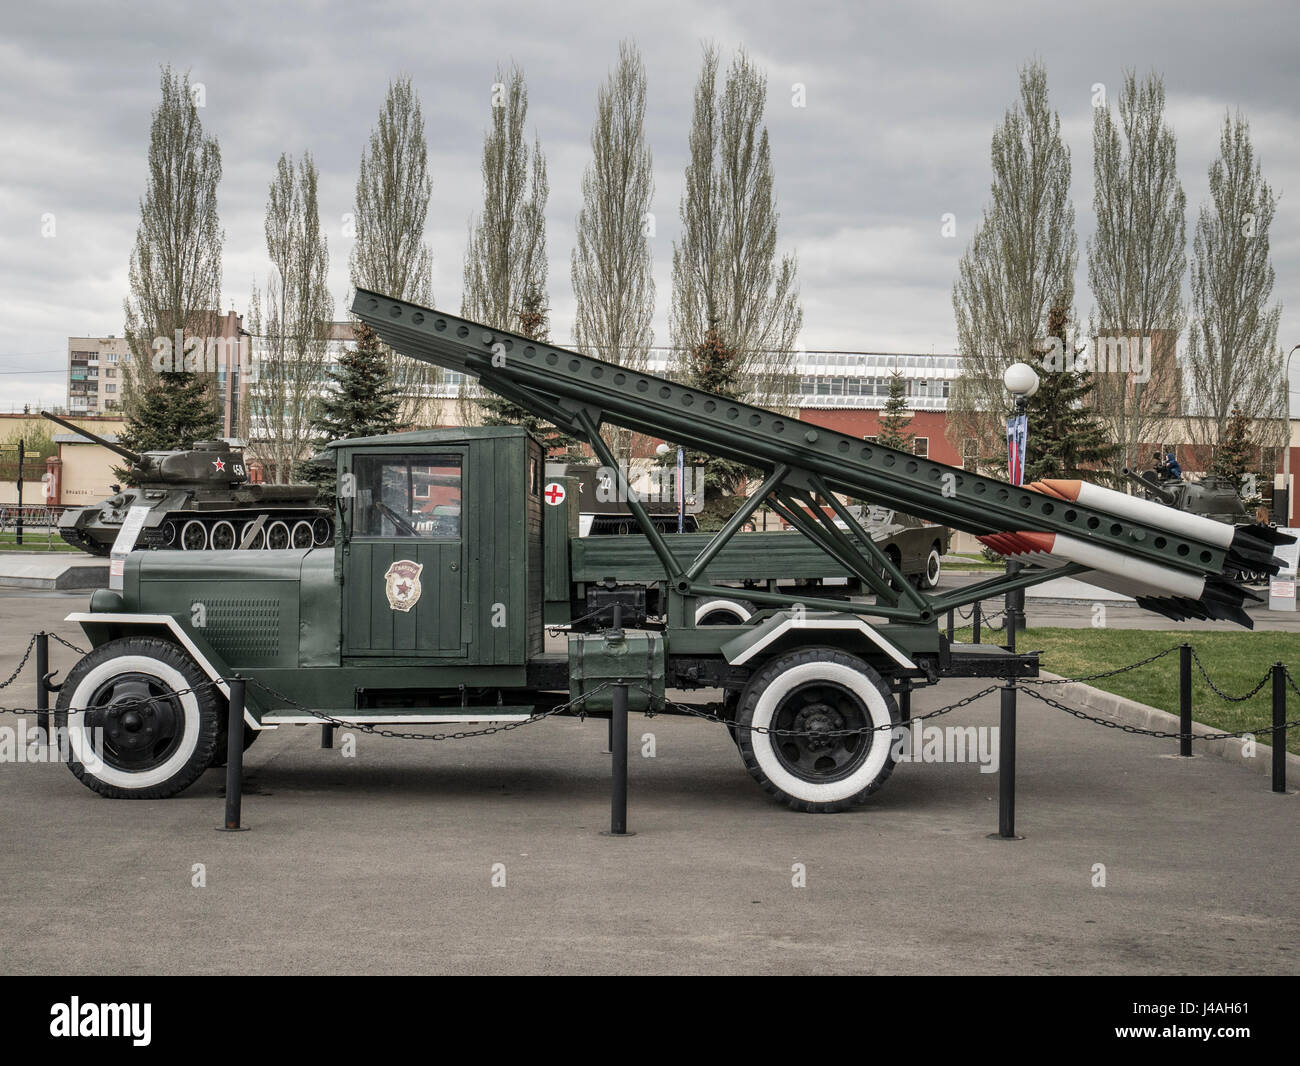 Katyusha Rocket Launcher Mounted on a BM8 truck - Stock Image